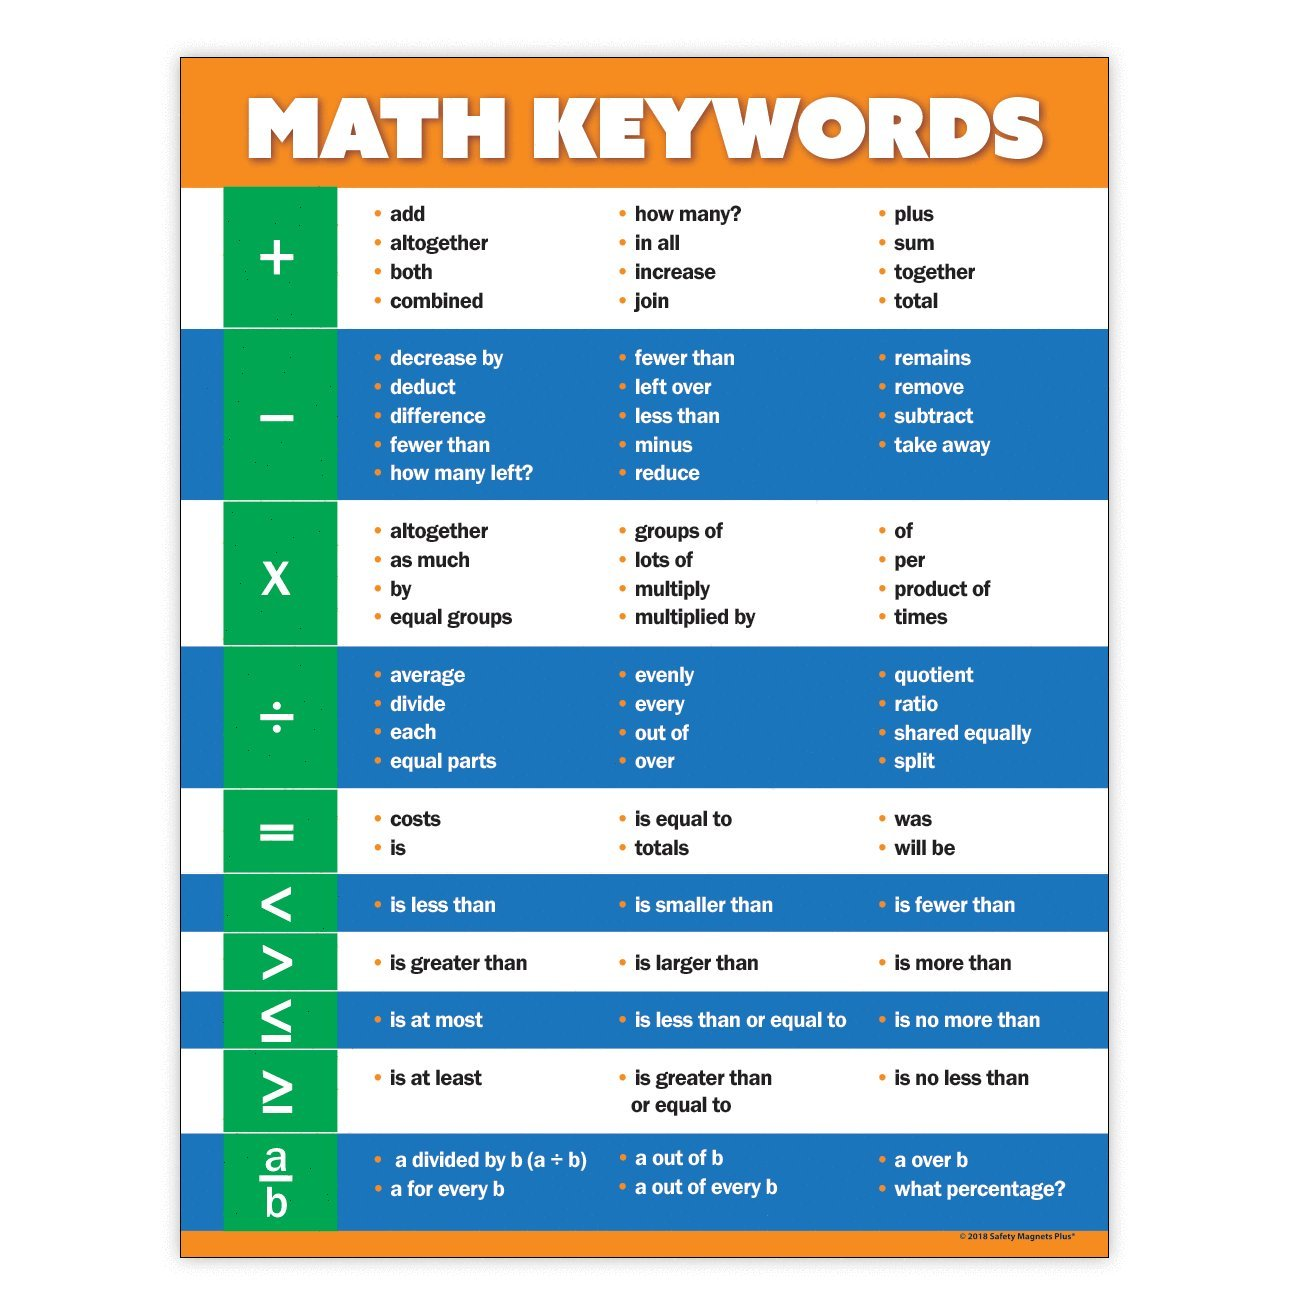 Math Keywords Classroom Poster - Teaching Word Problems - 17 x 22 in ...